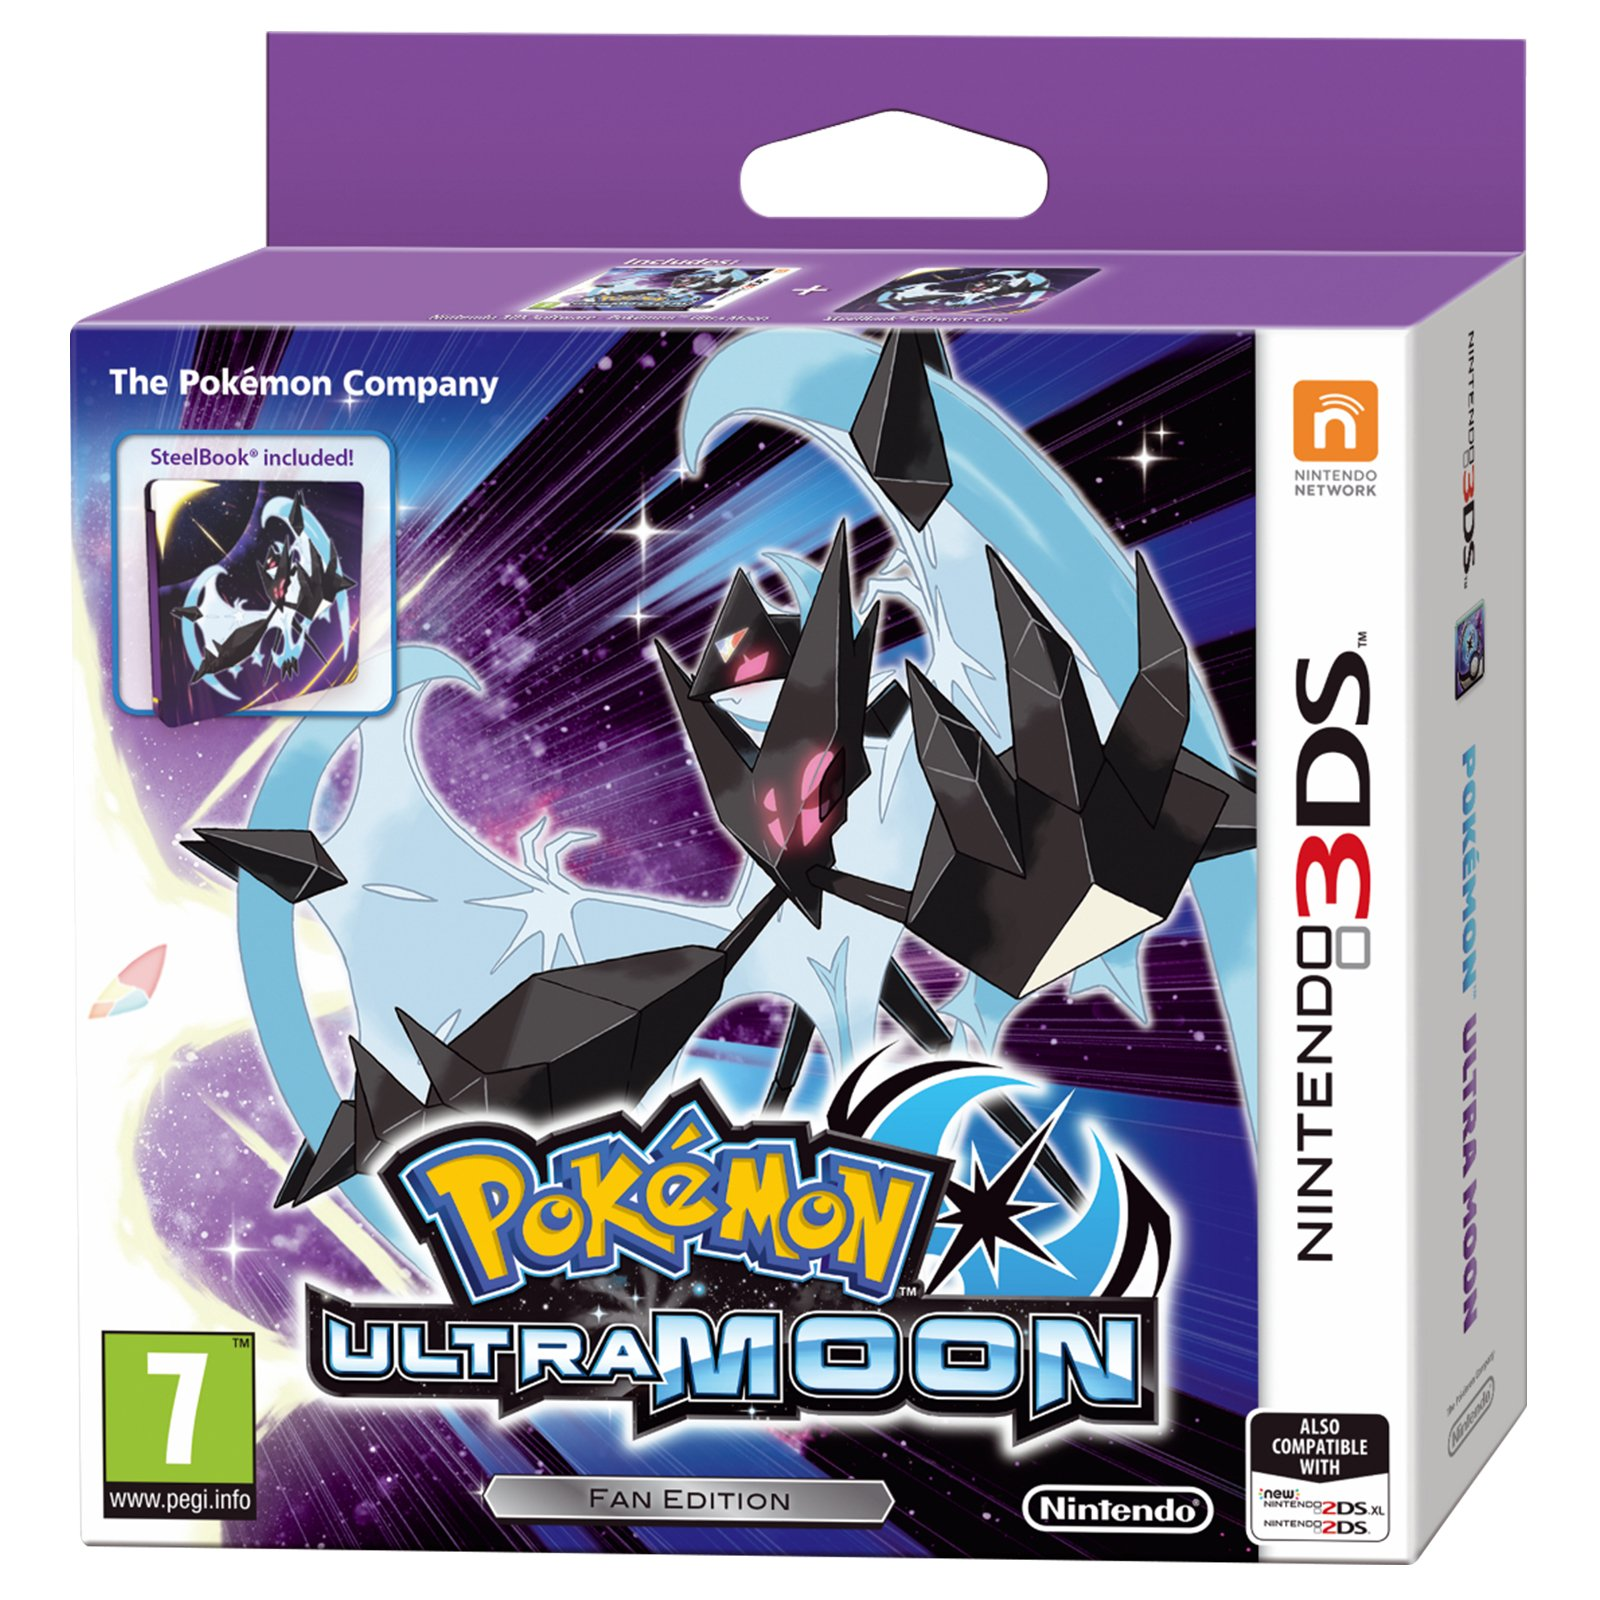 Pokémon Ultra Moon - Fan Edition (Nintendo 3DS)